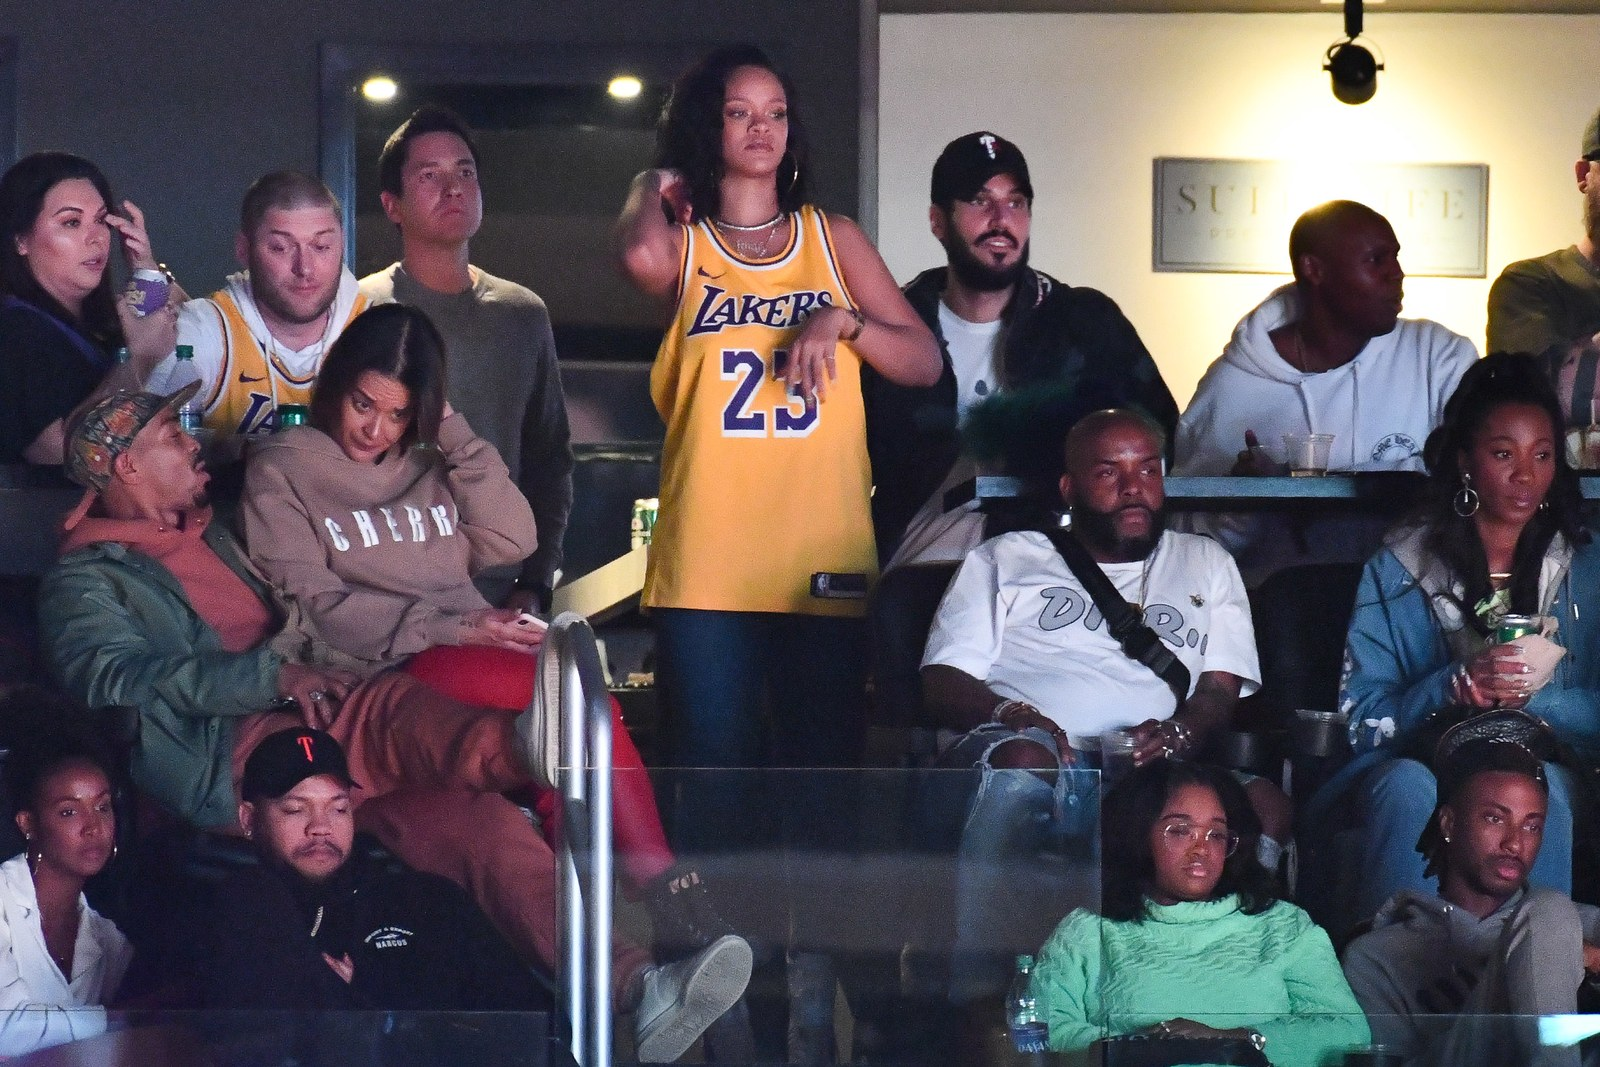 Rihanna at a basketball game in February 2019.